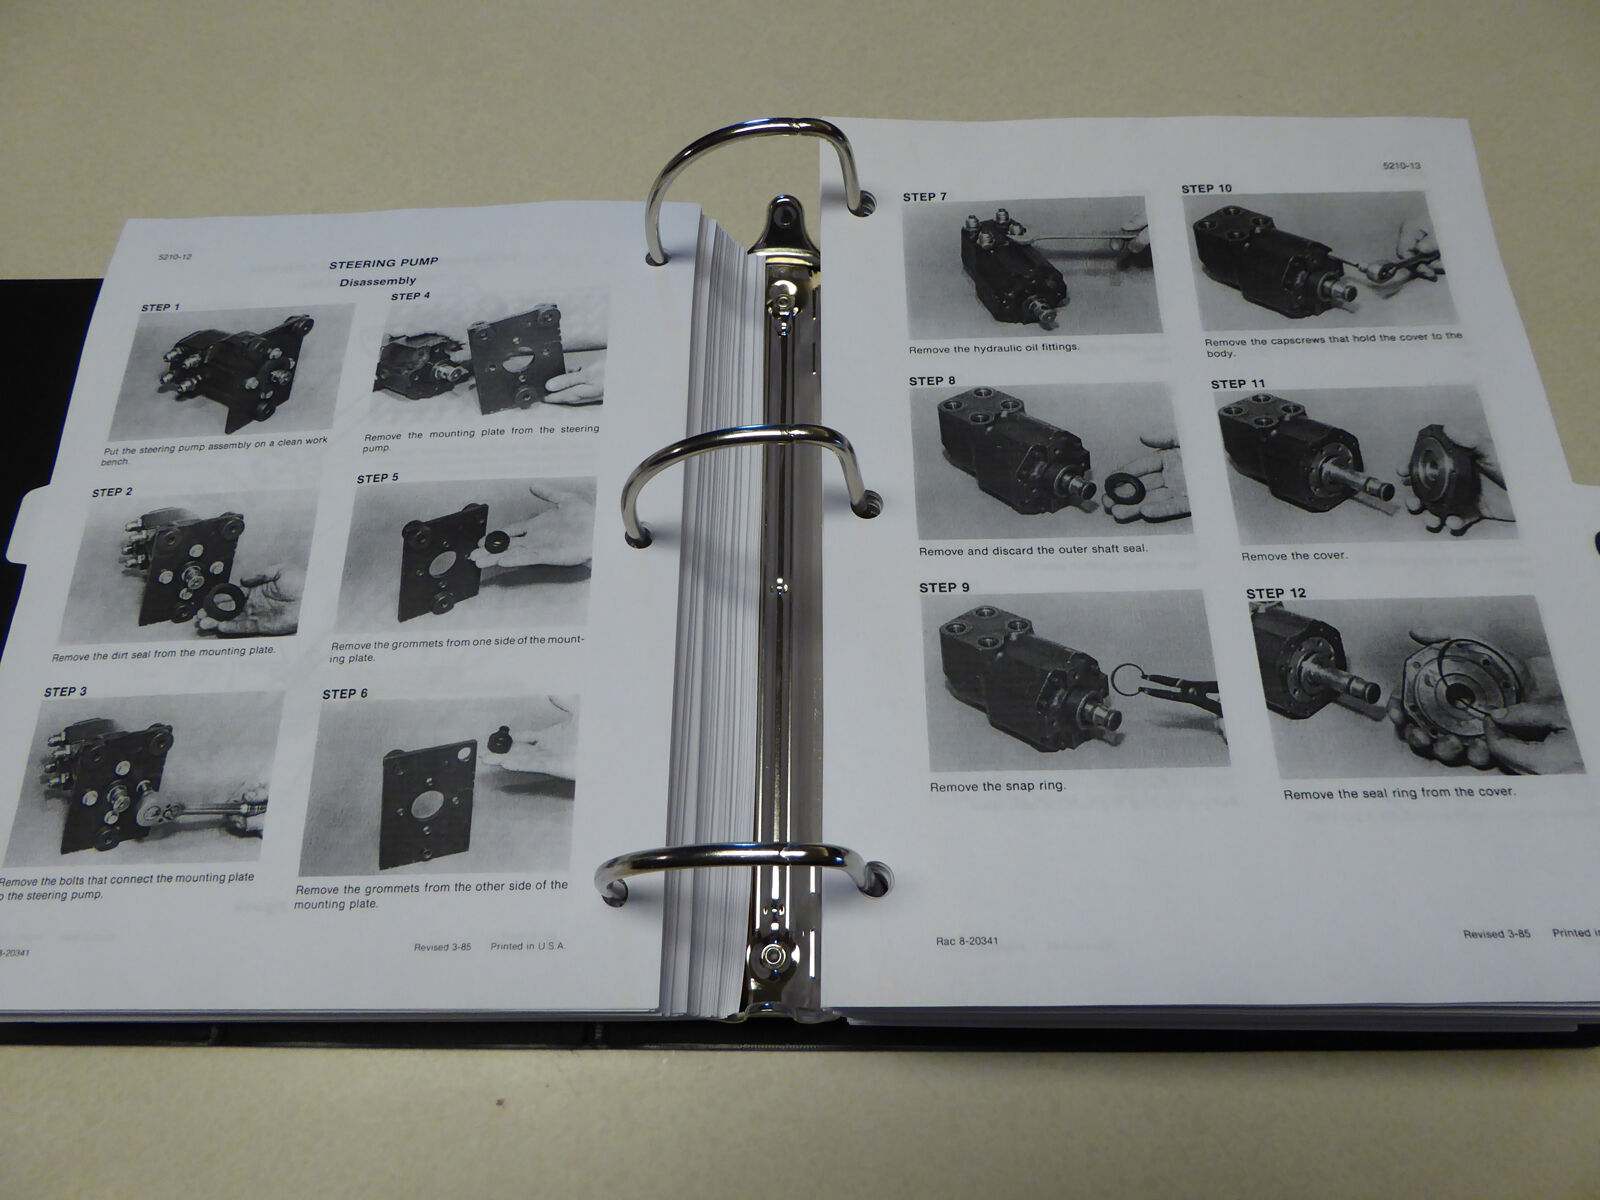 Case 3394 3594 Tractor Service Manual Repair Shop Book New With 430ck Wiring Diagram 6 Of 12 Binder 7